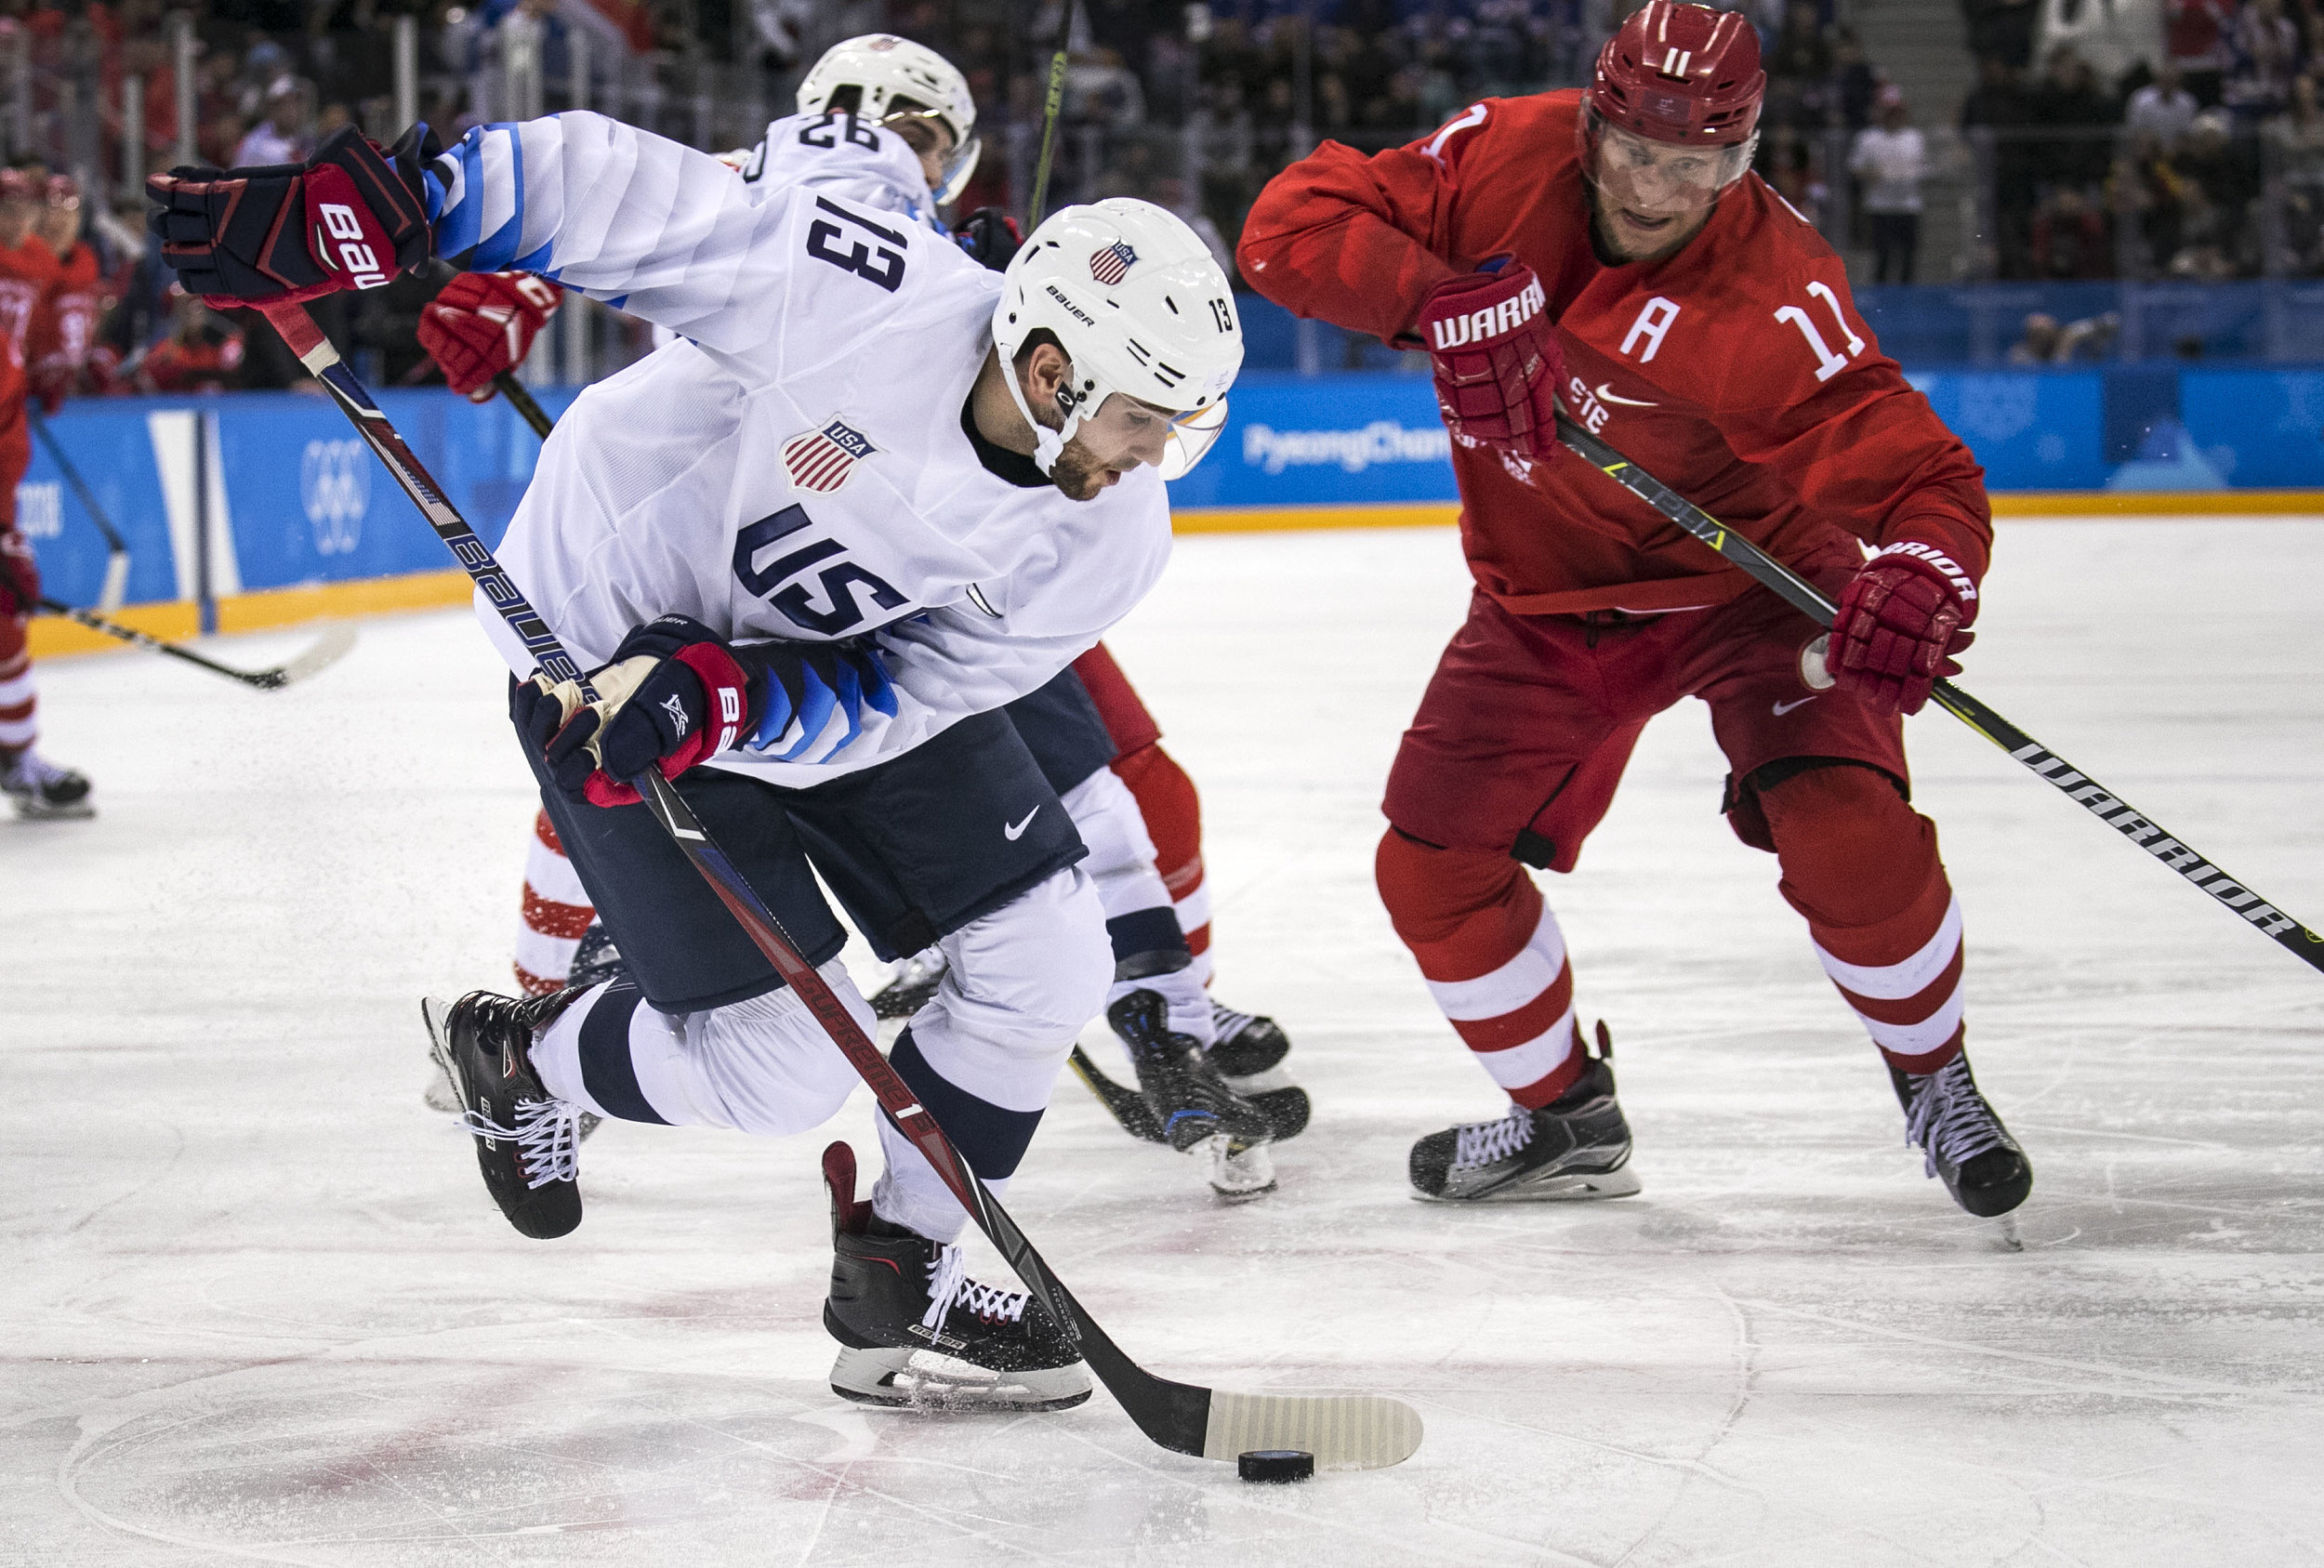 U.S. men's hockey team, forward Ryan Gunderson, retrieves the puck to score against the Olympic Athlete's of Russia, Feb. 17, at Gangneung Hockey Centre. U.S. lost, 4-0 in a shut out against the Olympic Athlete's of Russia. Grace Hollars, BSU at the Games